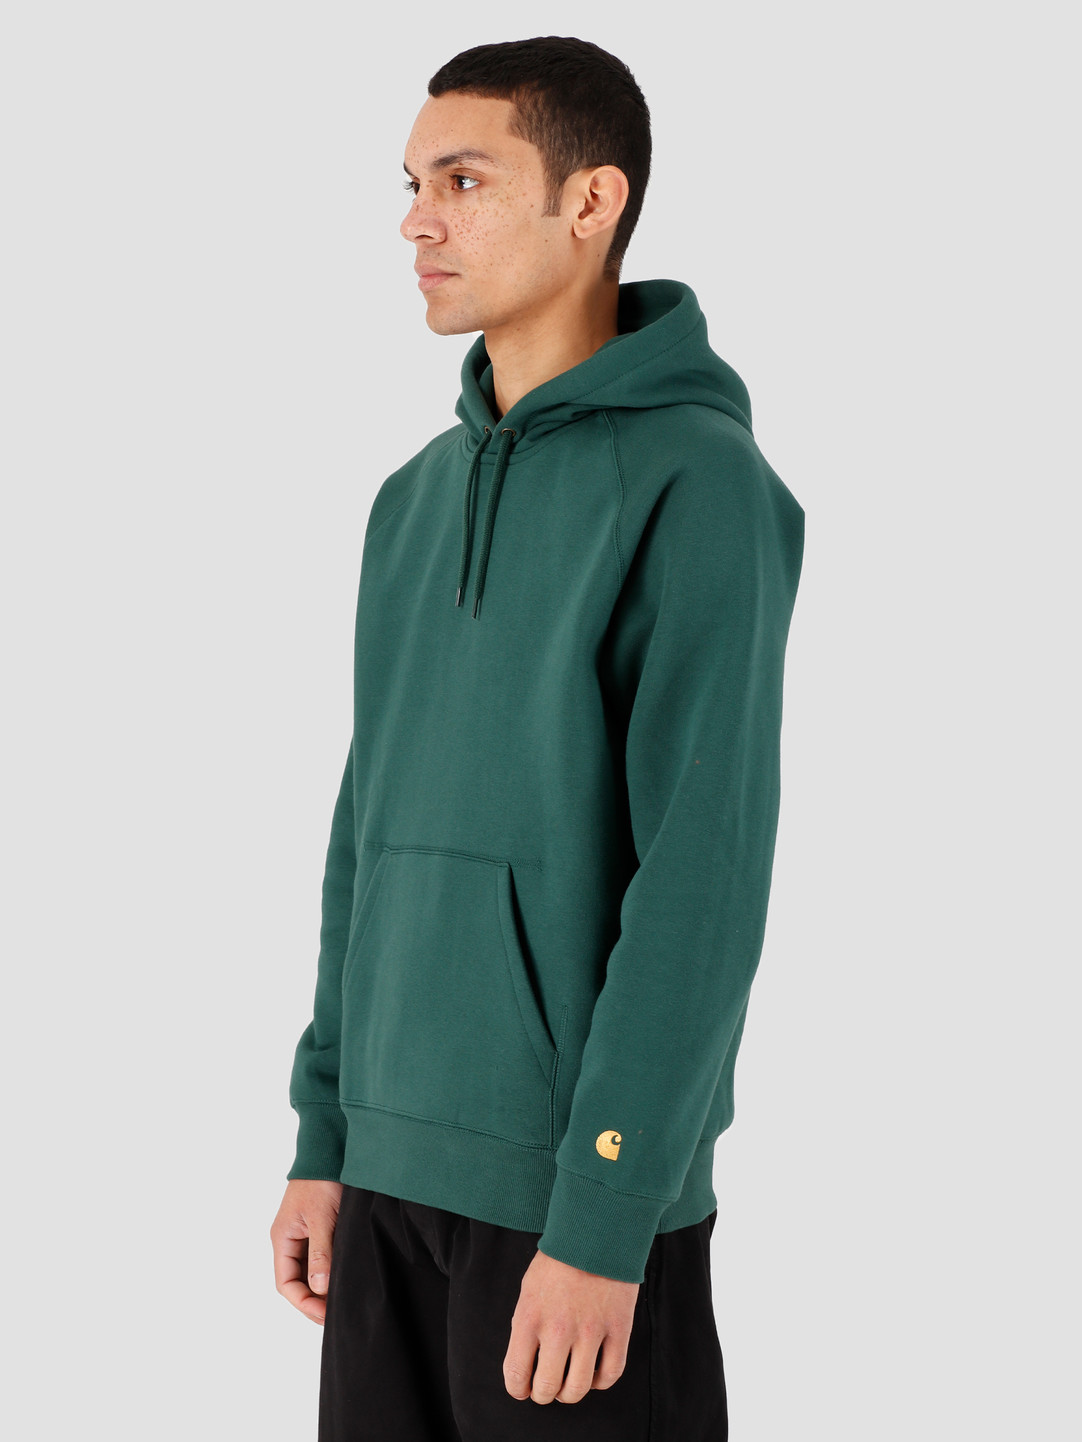 Carhartt WIP Carhartt WIP Hooded Chase Sweat Treehouse Gold I026384-08Z90